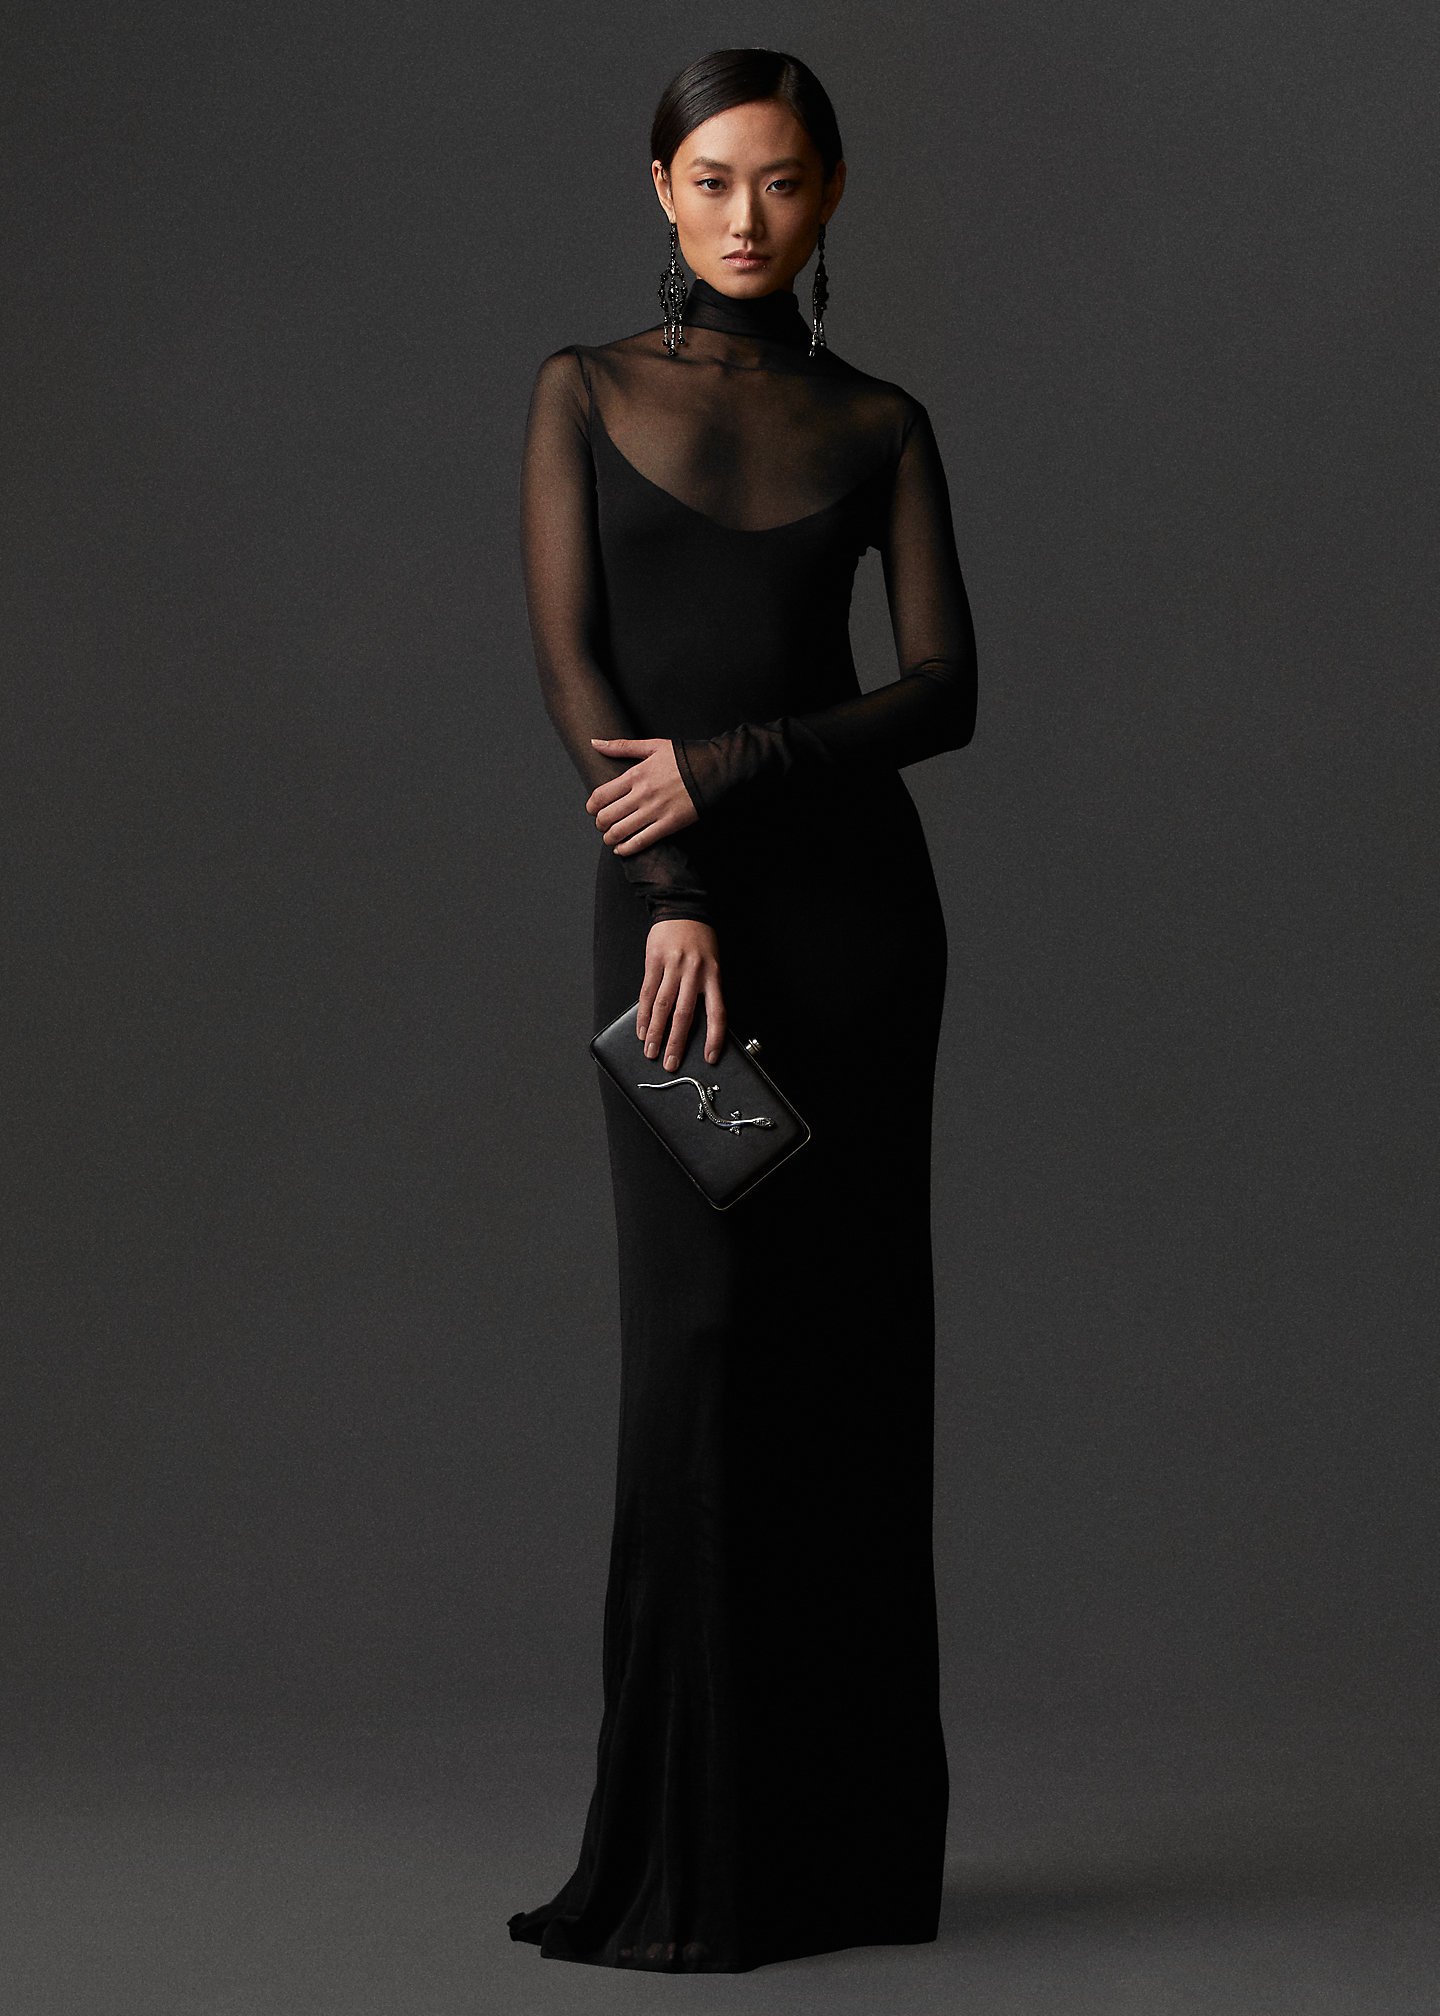 All black gown with sheer long sleeves and a turtleneck by Ralph Lauren for winter wedding guest.